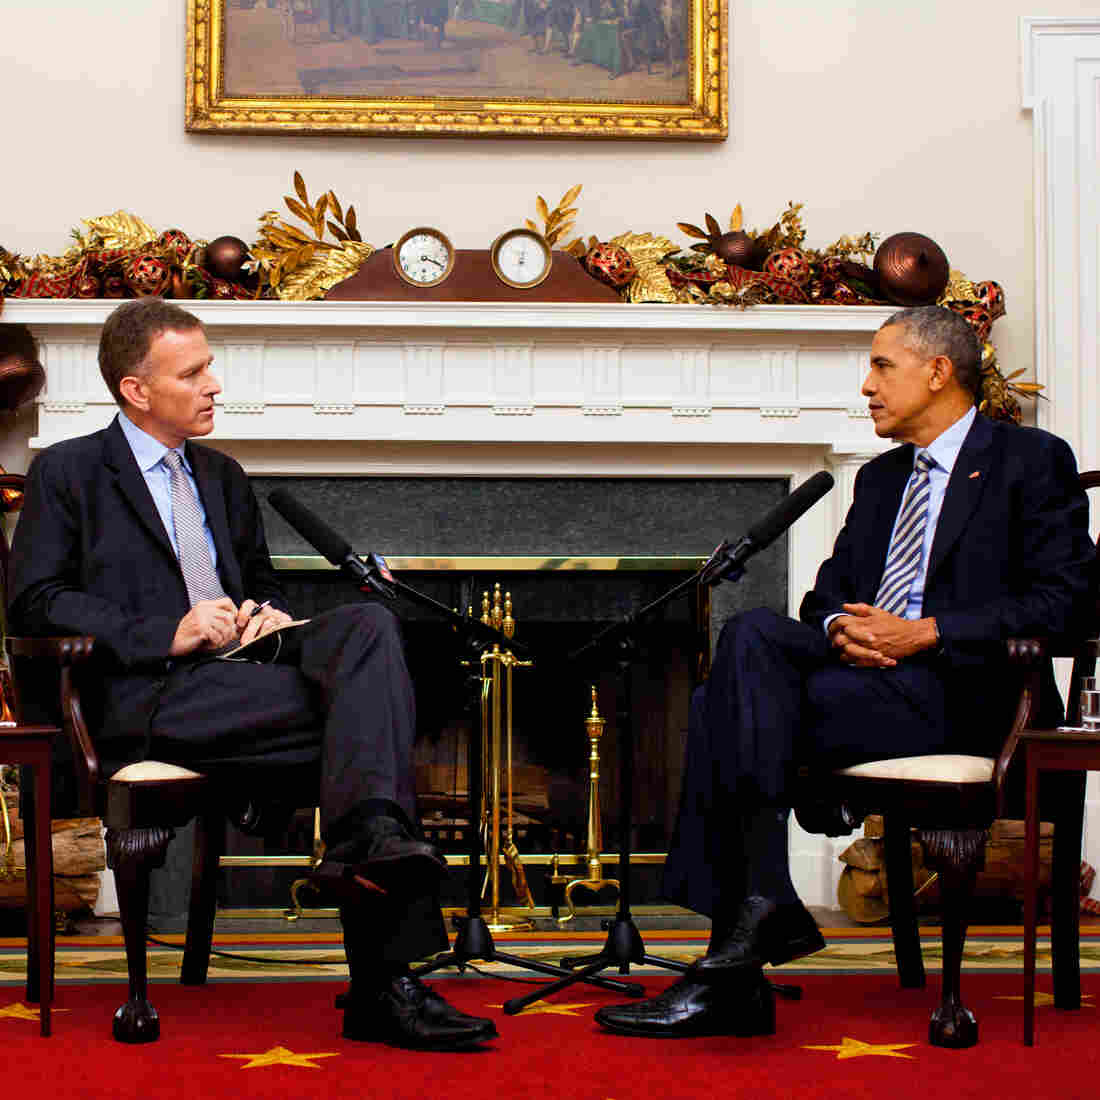 NPR's Steve Inskeep interviews President Obama at the White House.